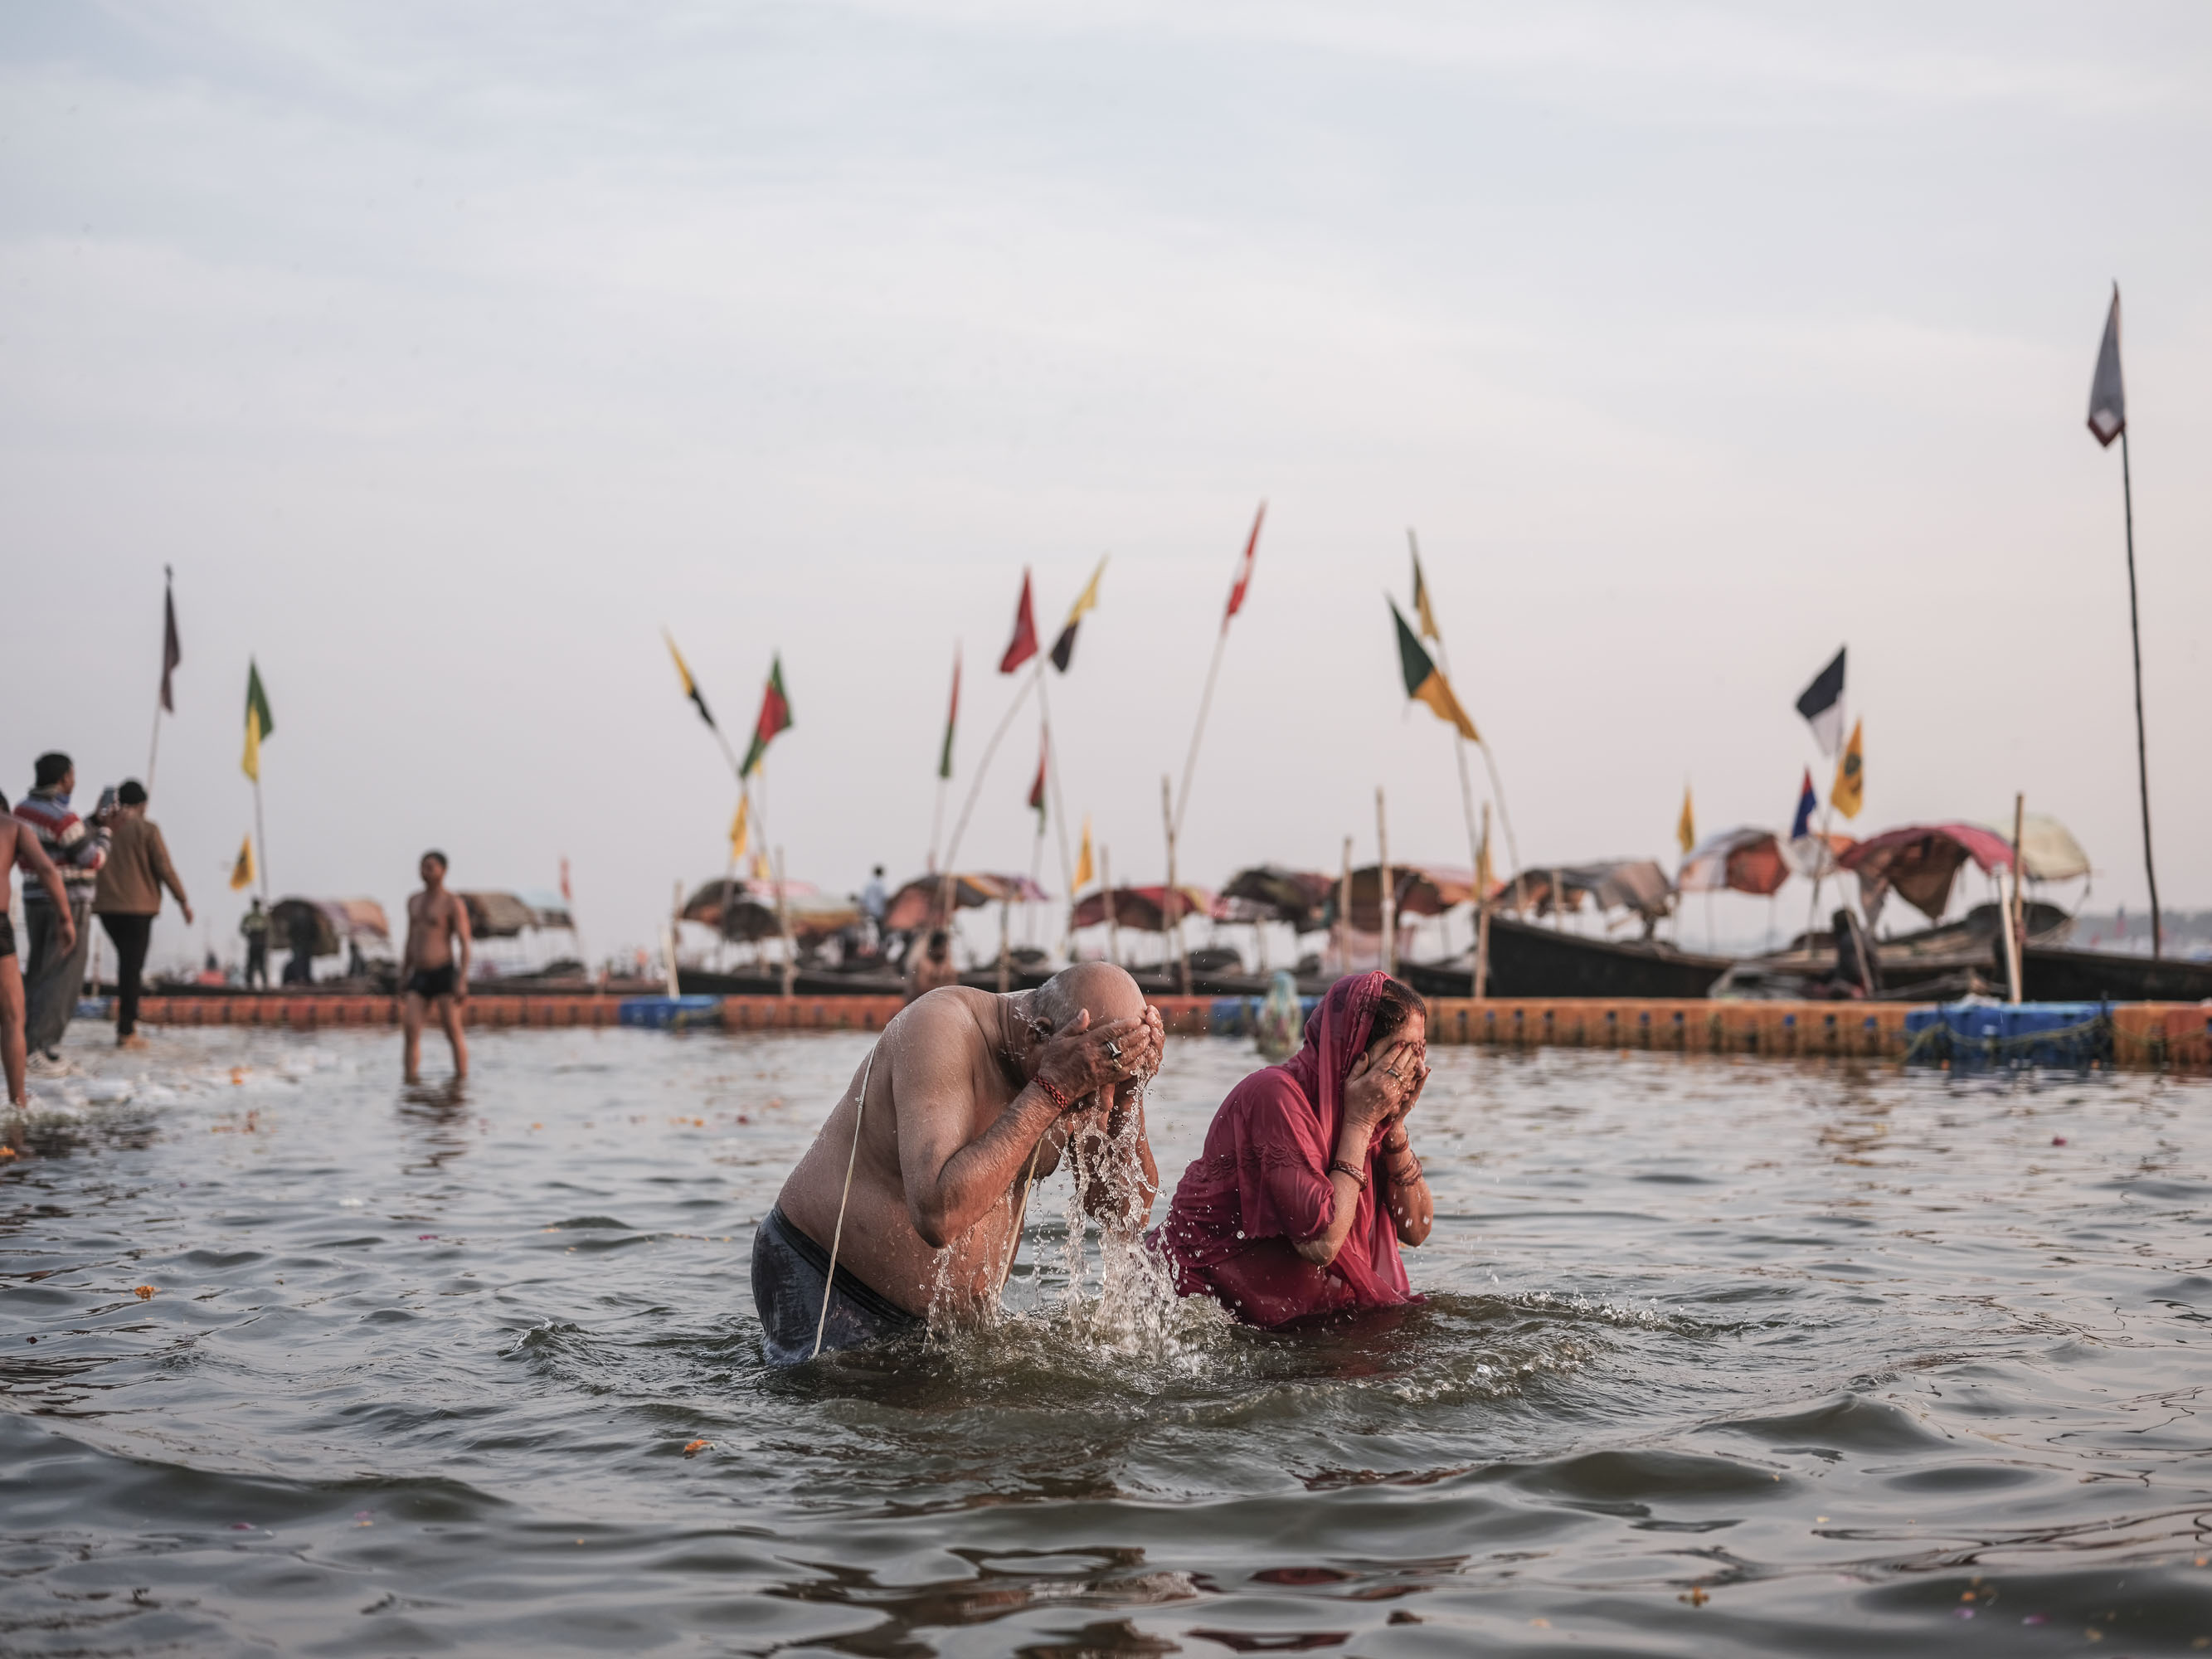 couple old in the water praying pilgrims Kumbh mela 2019 India Allahabad Prayagraj Ardh hindu religious Festival event rivers photographer jose jeuland photography